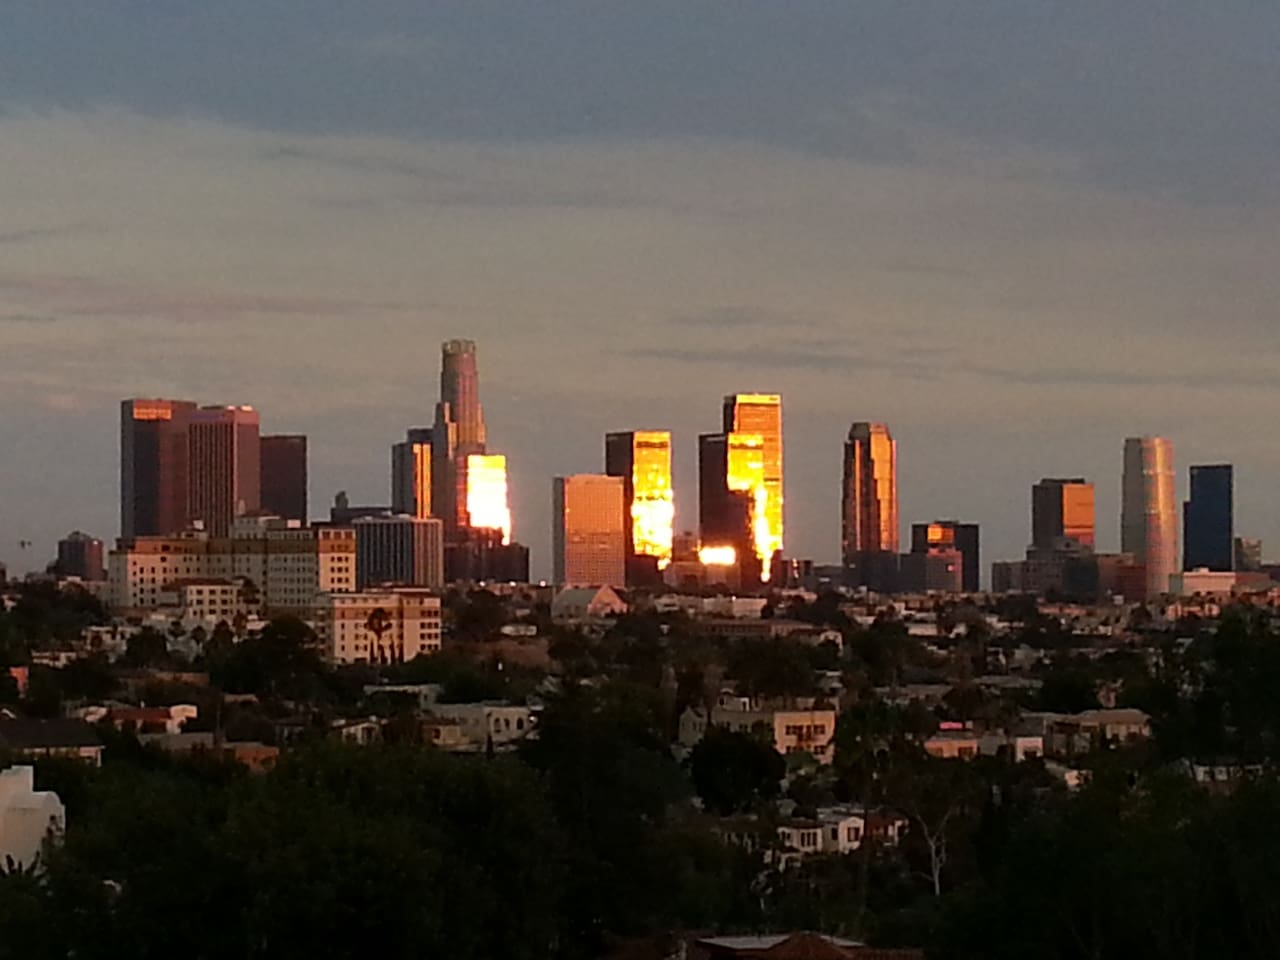 Sunset view off LA skyline from balconies